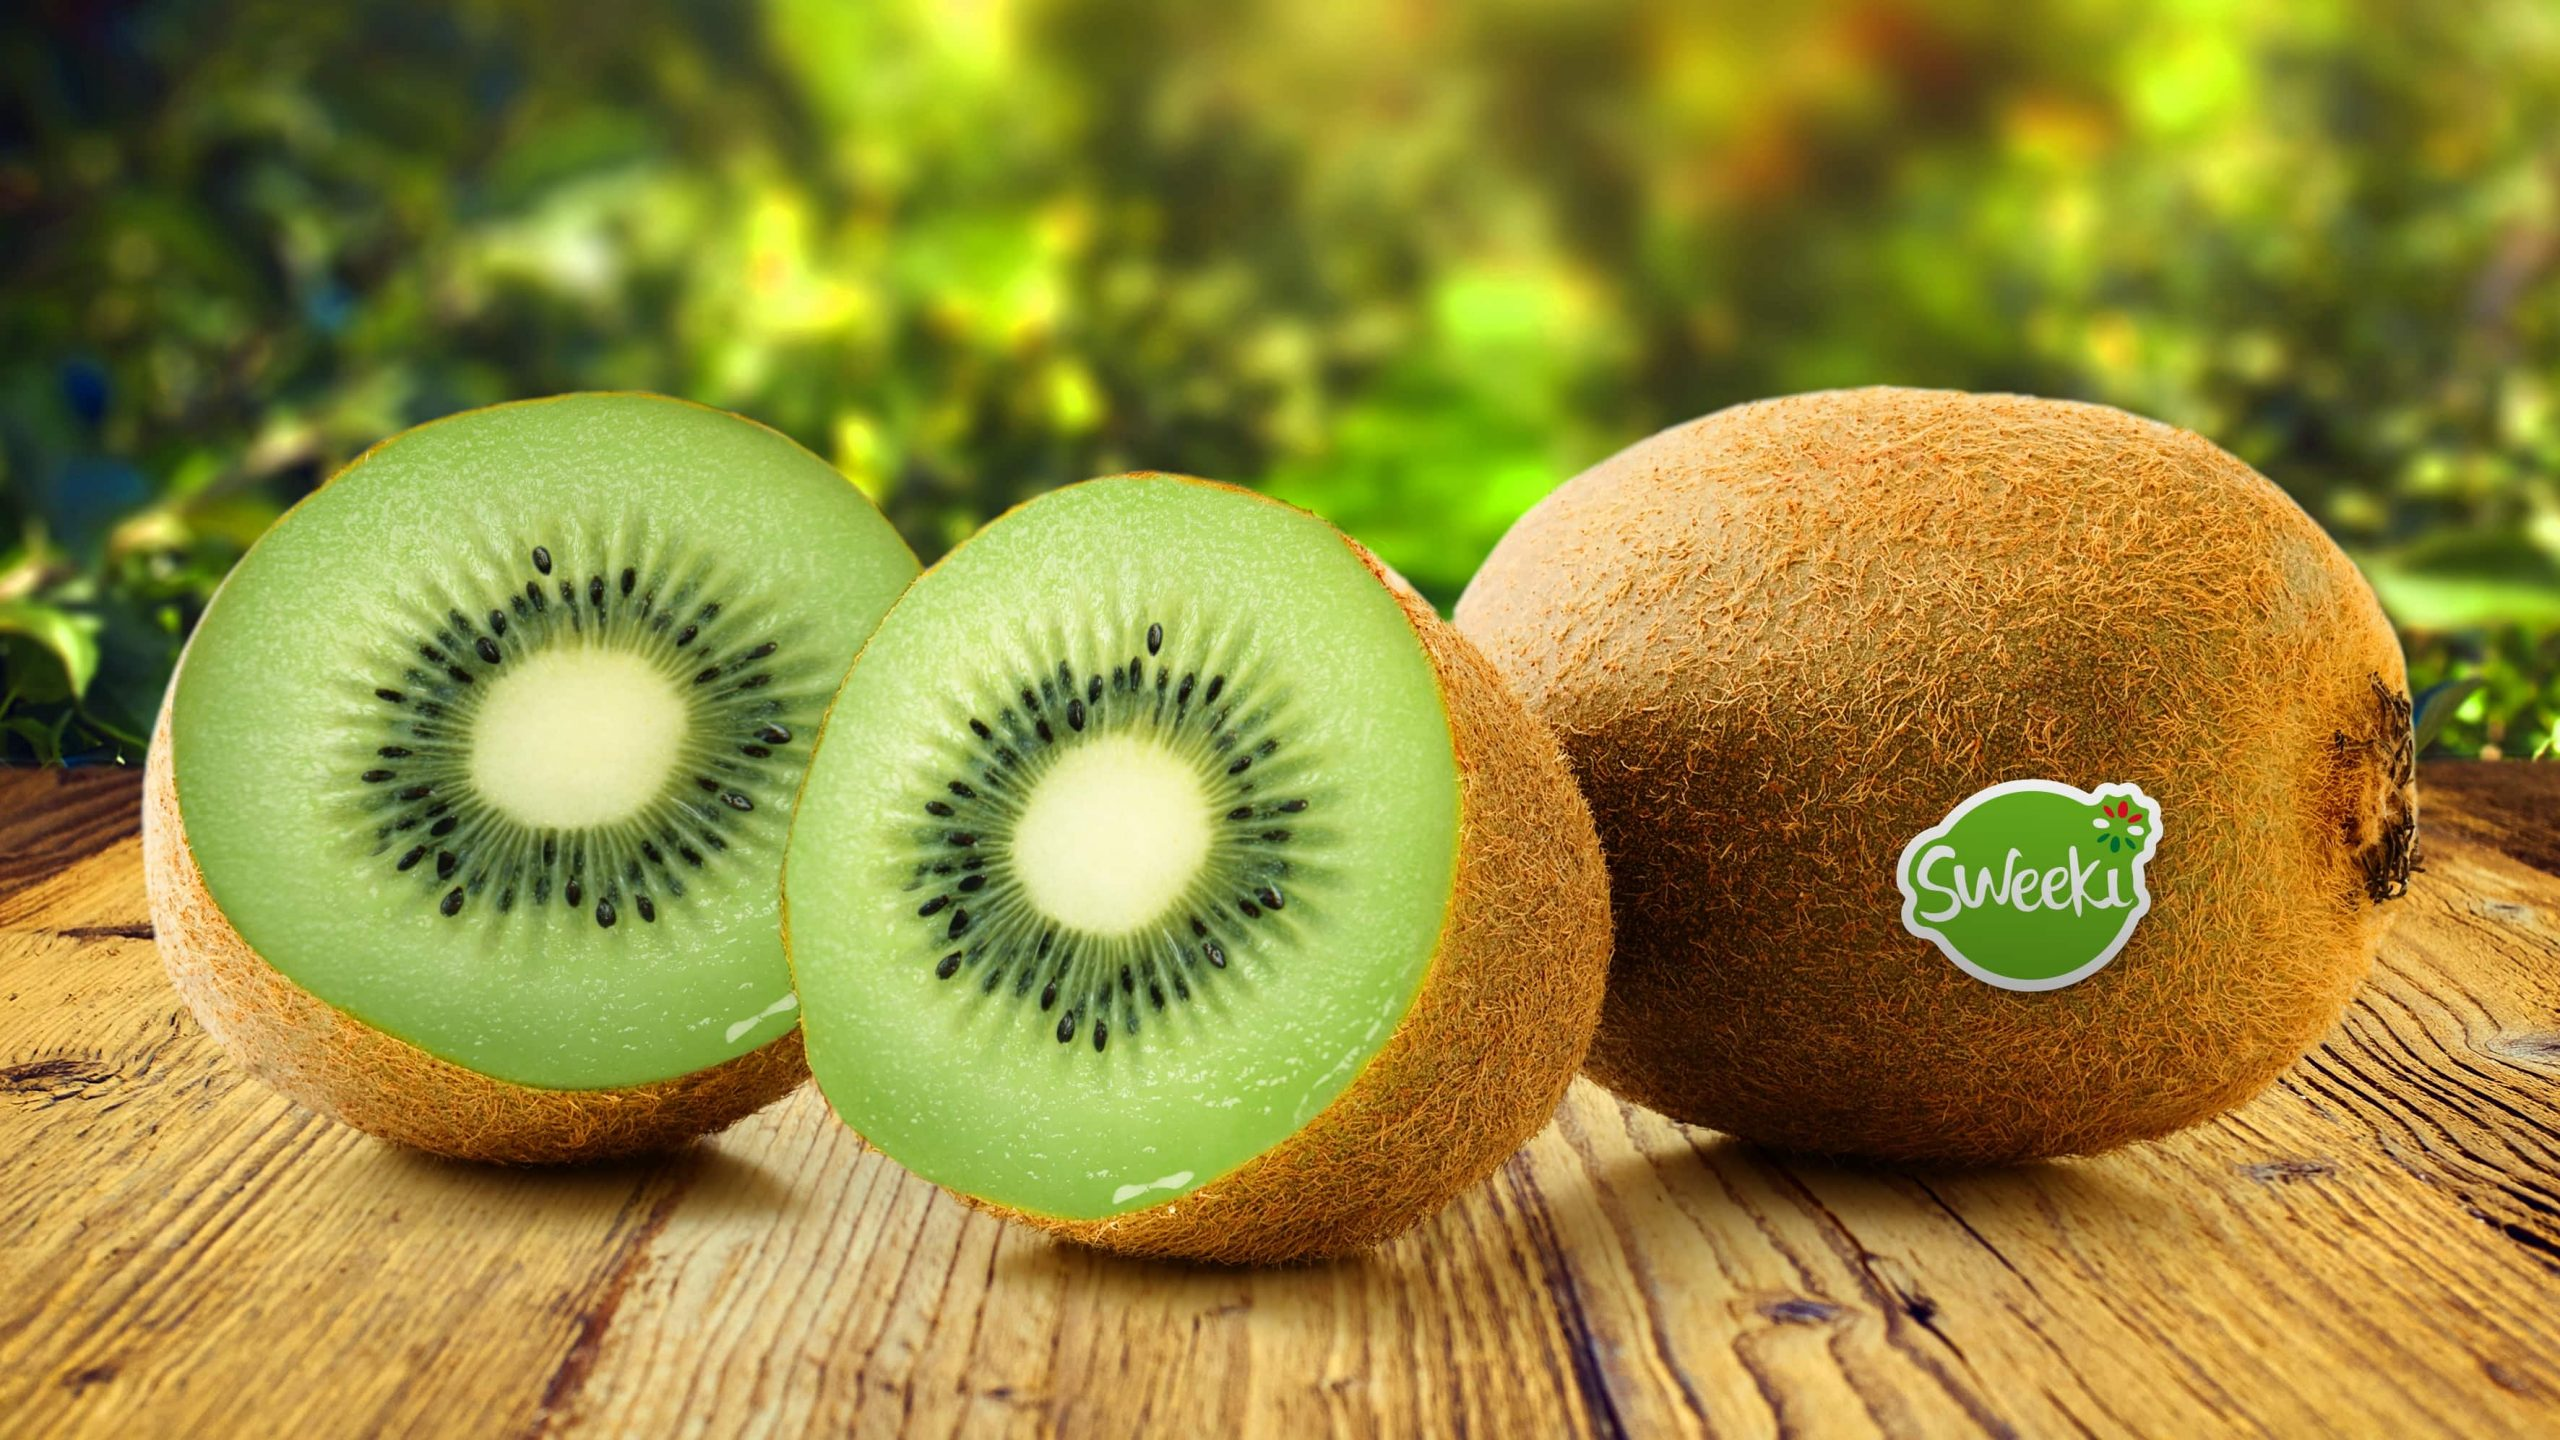 Kiwis Fruit